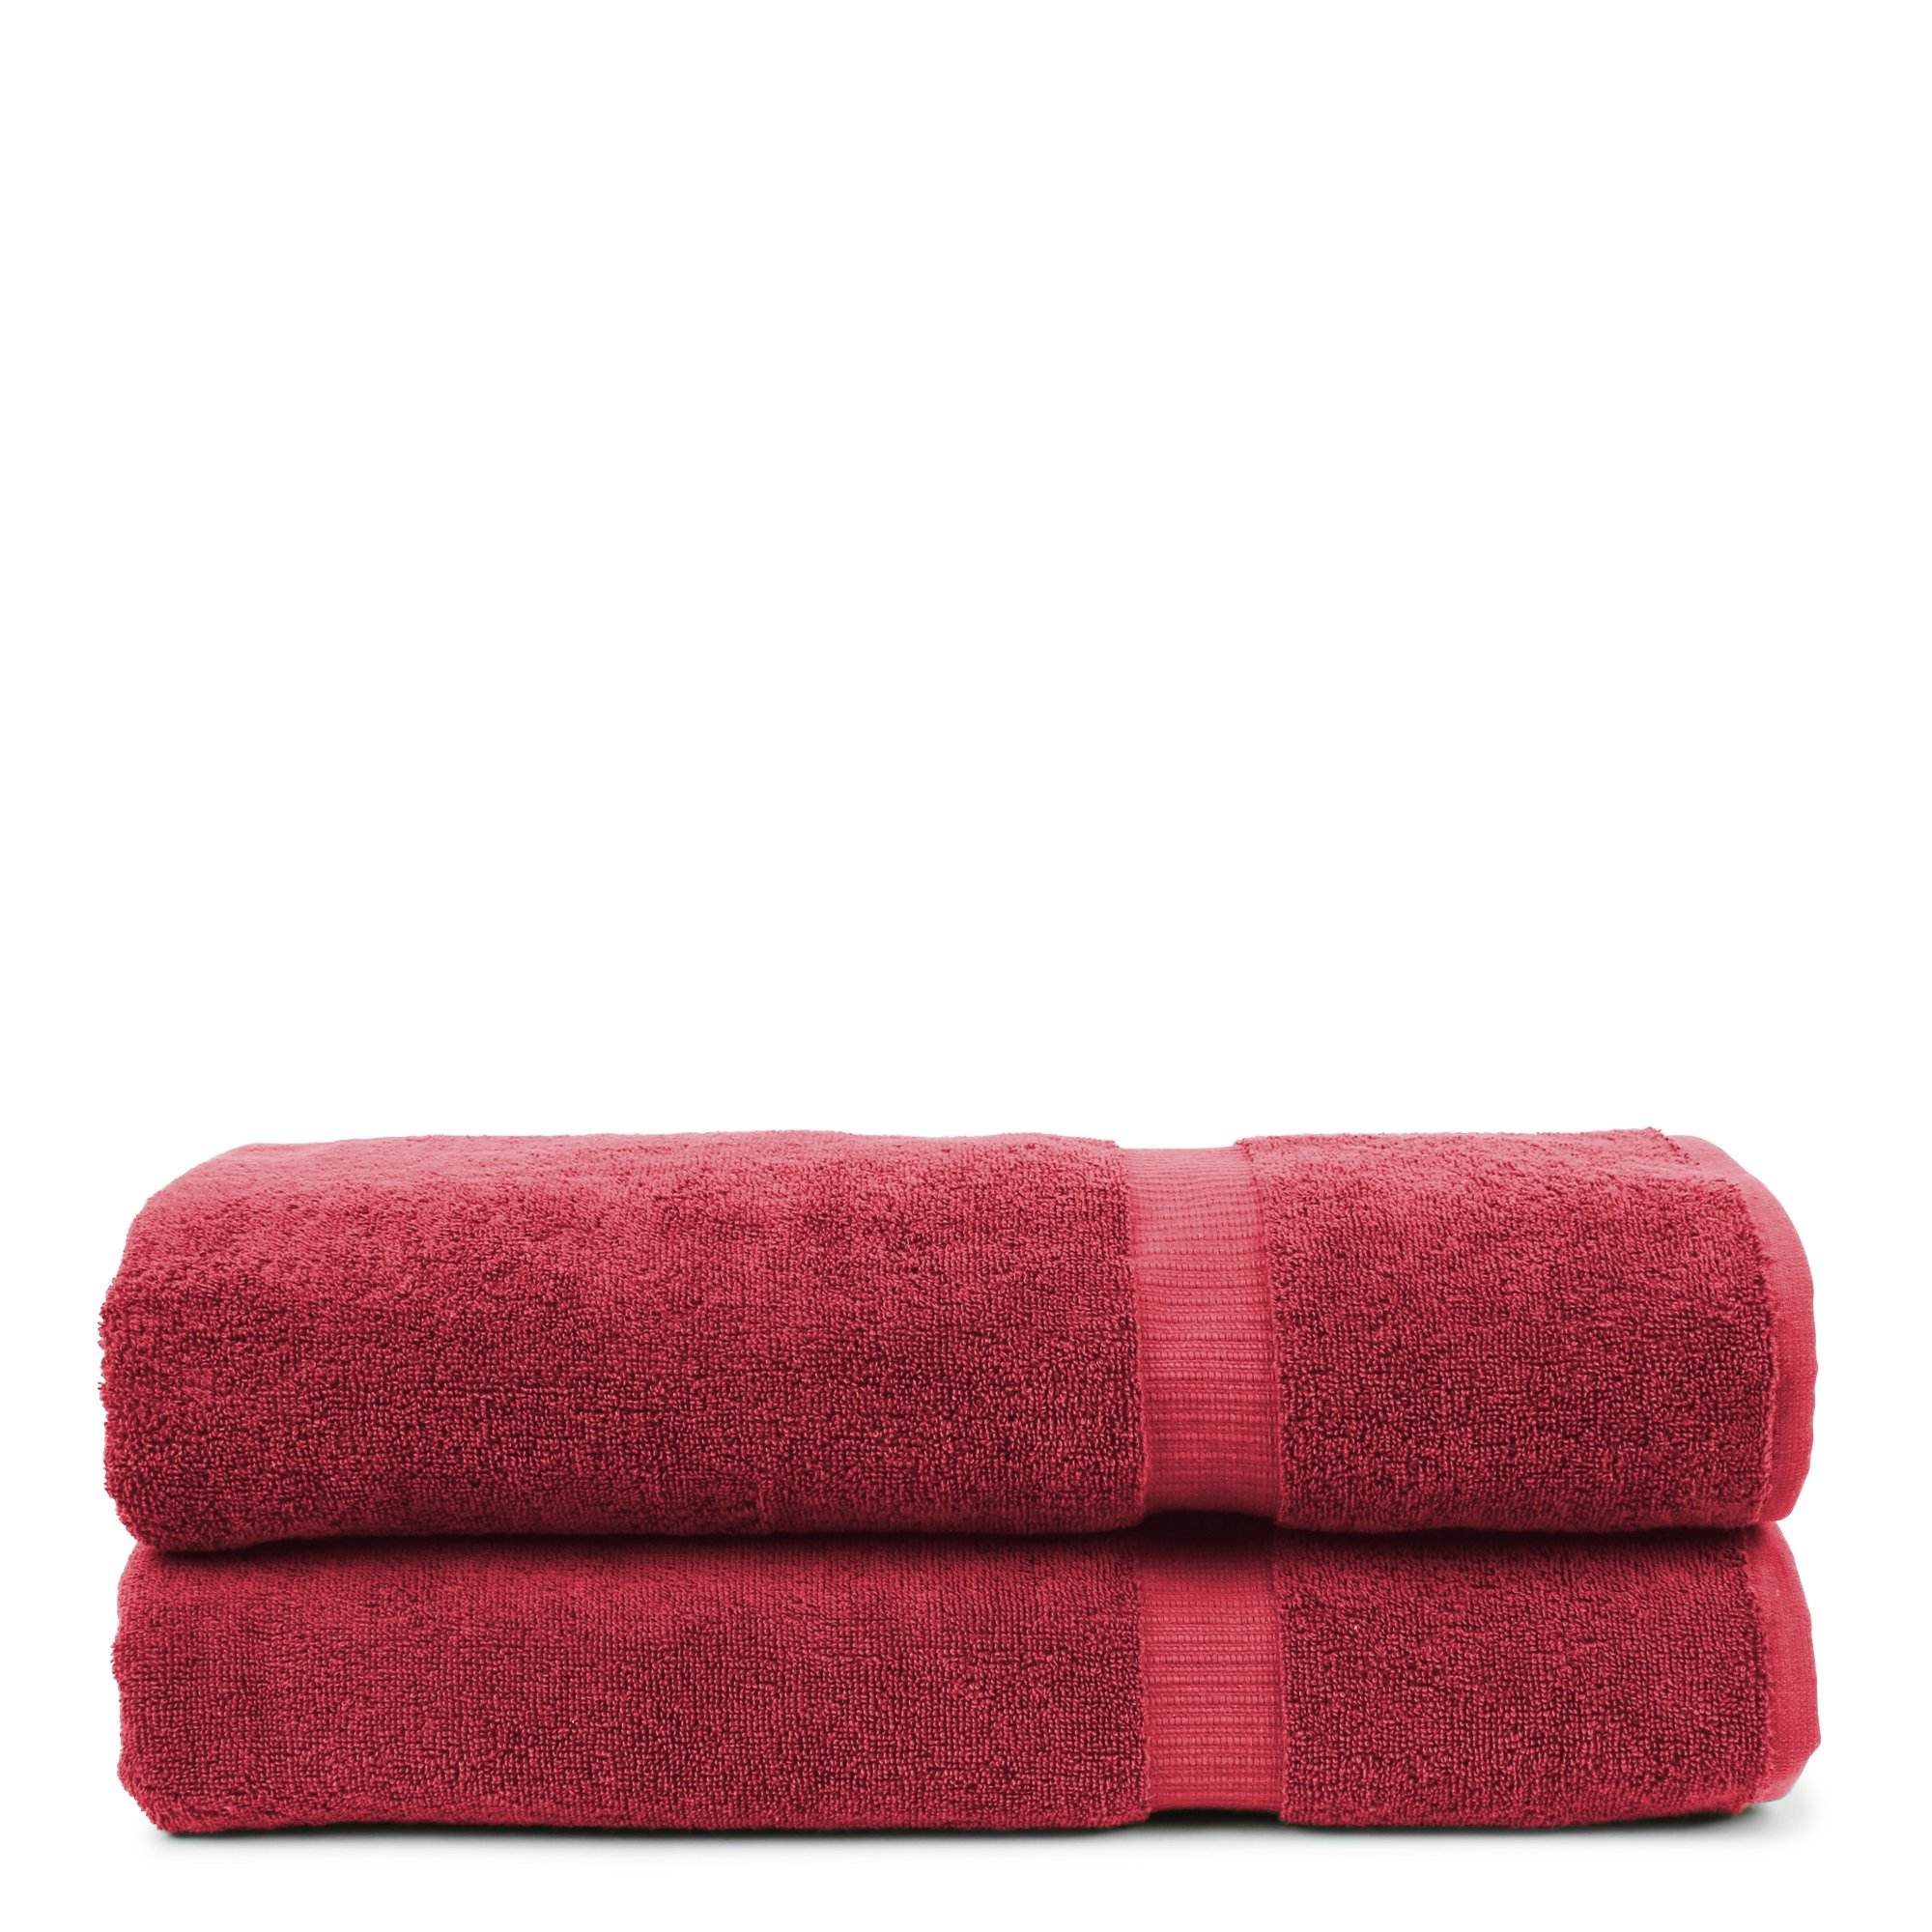 BC BARE COTTON Bare Cotton Luxury Hotel & Spa Towel Turkish Bath Sheets Dobby Border (Cranberry, Bath Sheets - Set of 2)